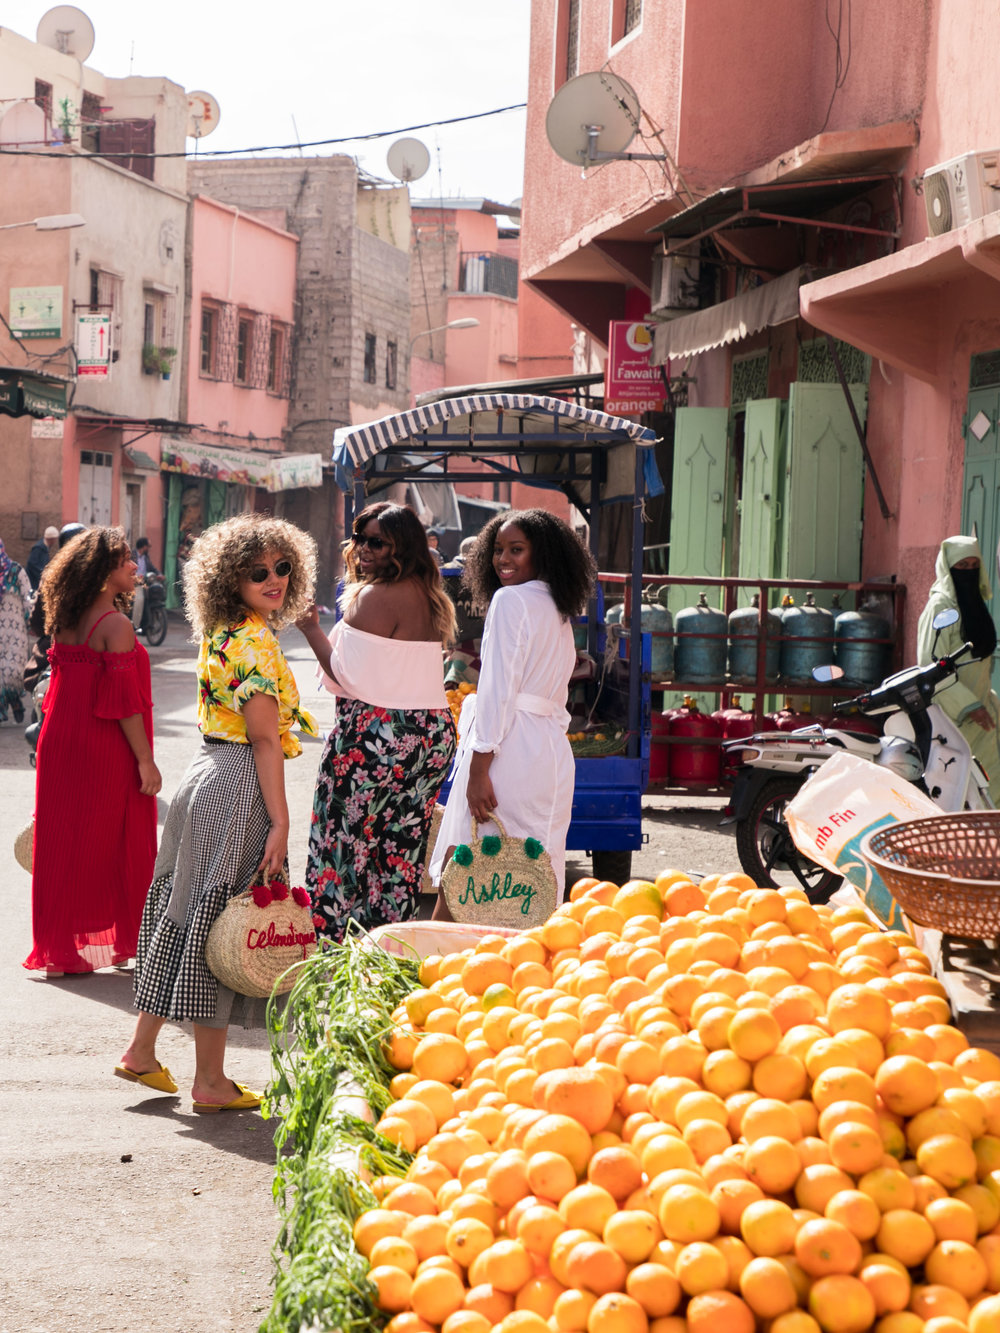 Marrakech-City-Scenes-24.jpg